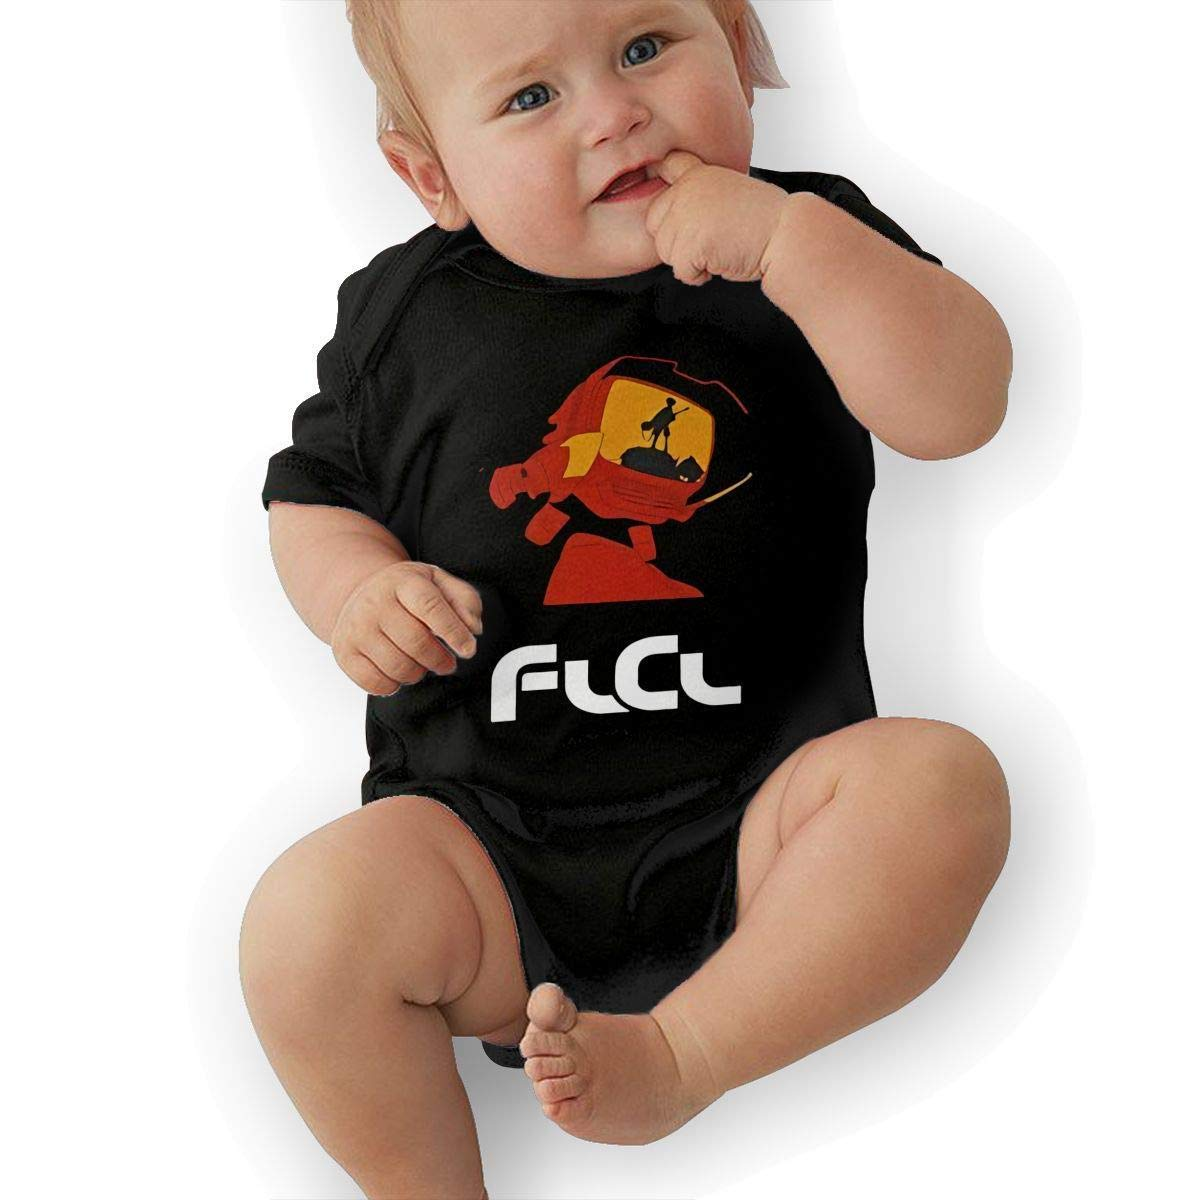 Infant Fooly Cooly FLCL Cat Adorable Soft Music Band Jersey Creeping Suit,Black,12M